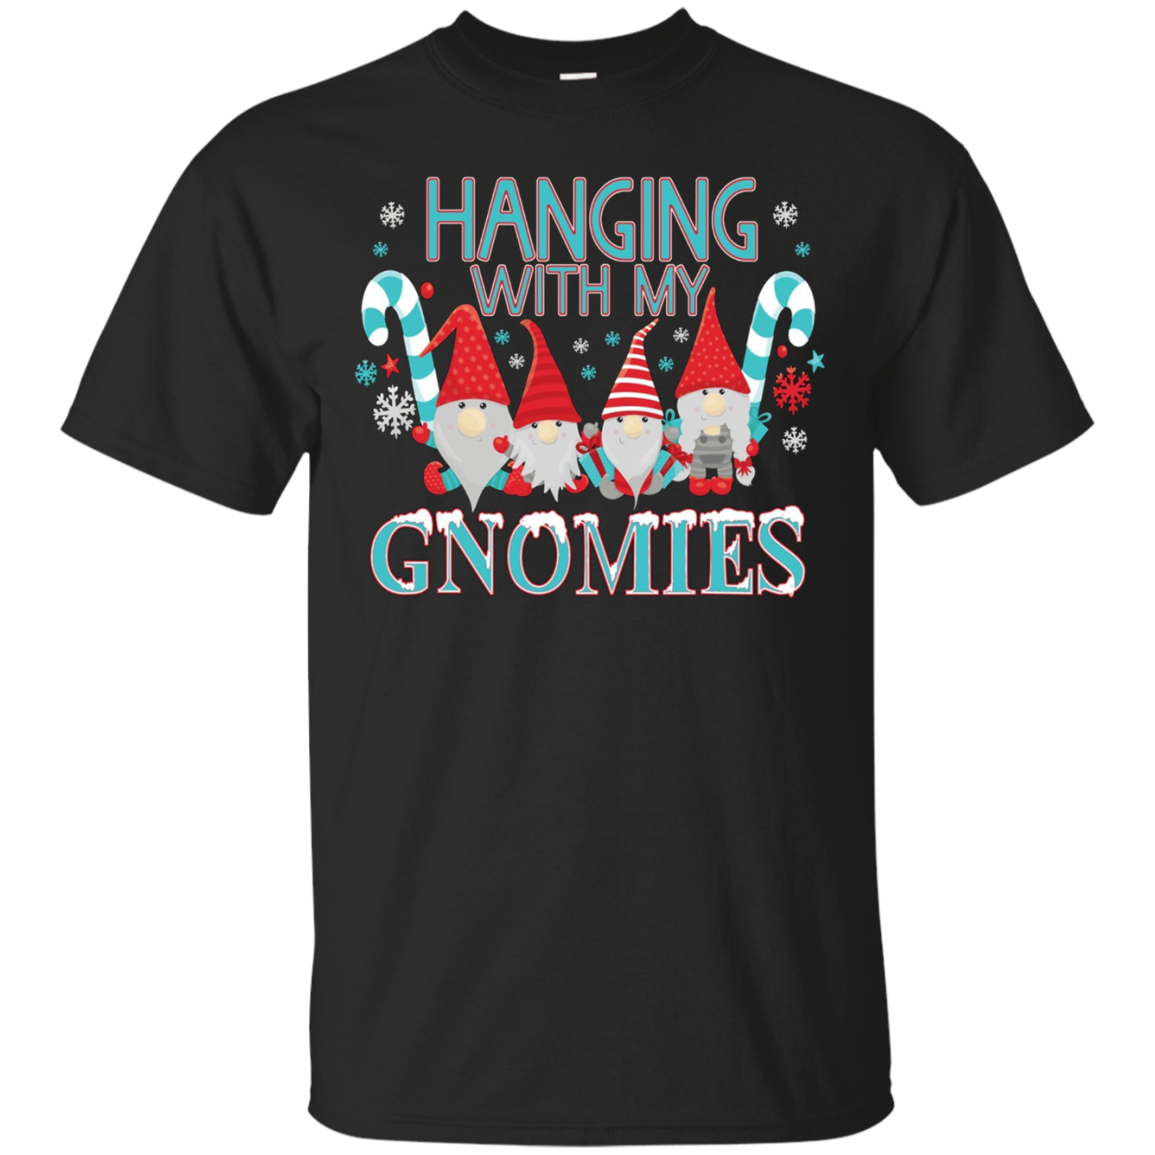 Funny Christmas Garden Gnome T-Shirt Hanging With My Gnomies